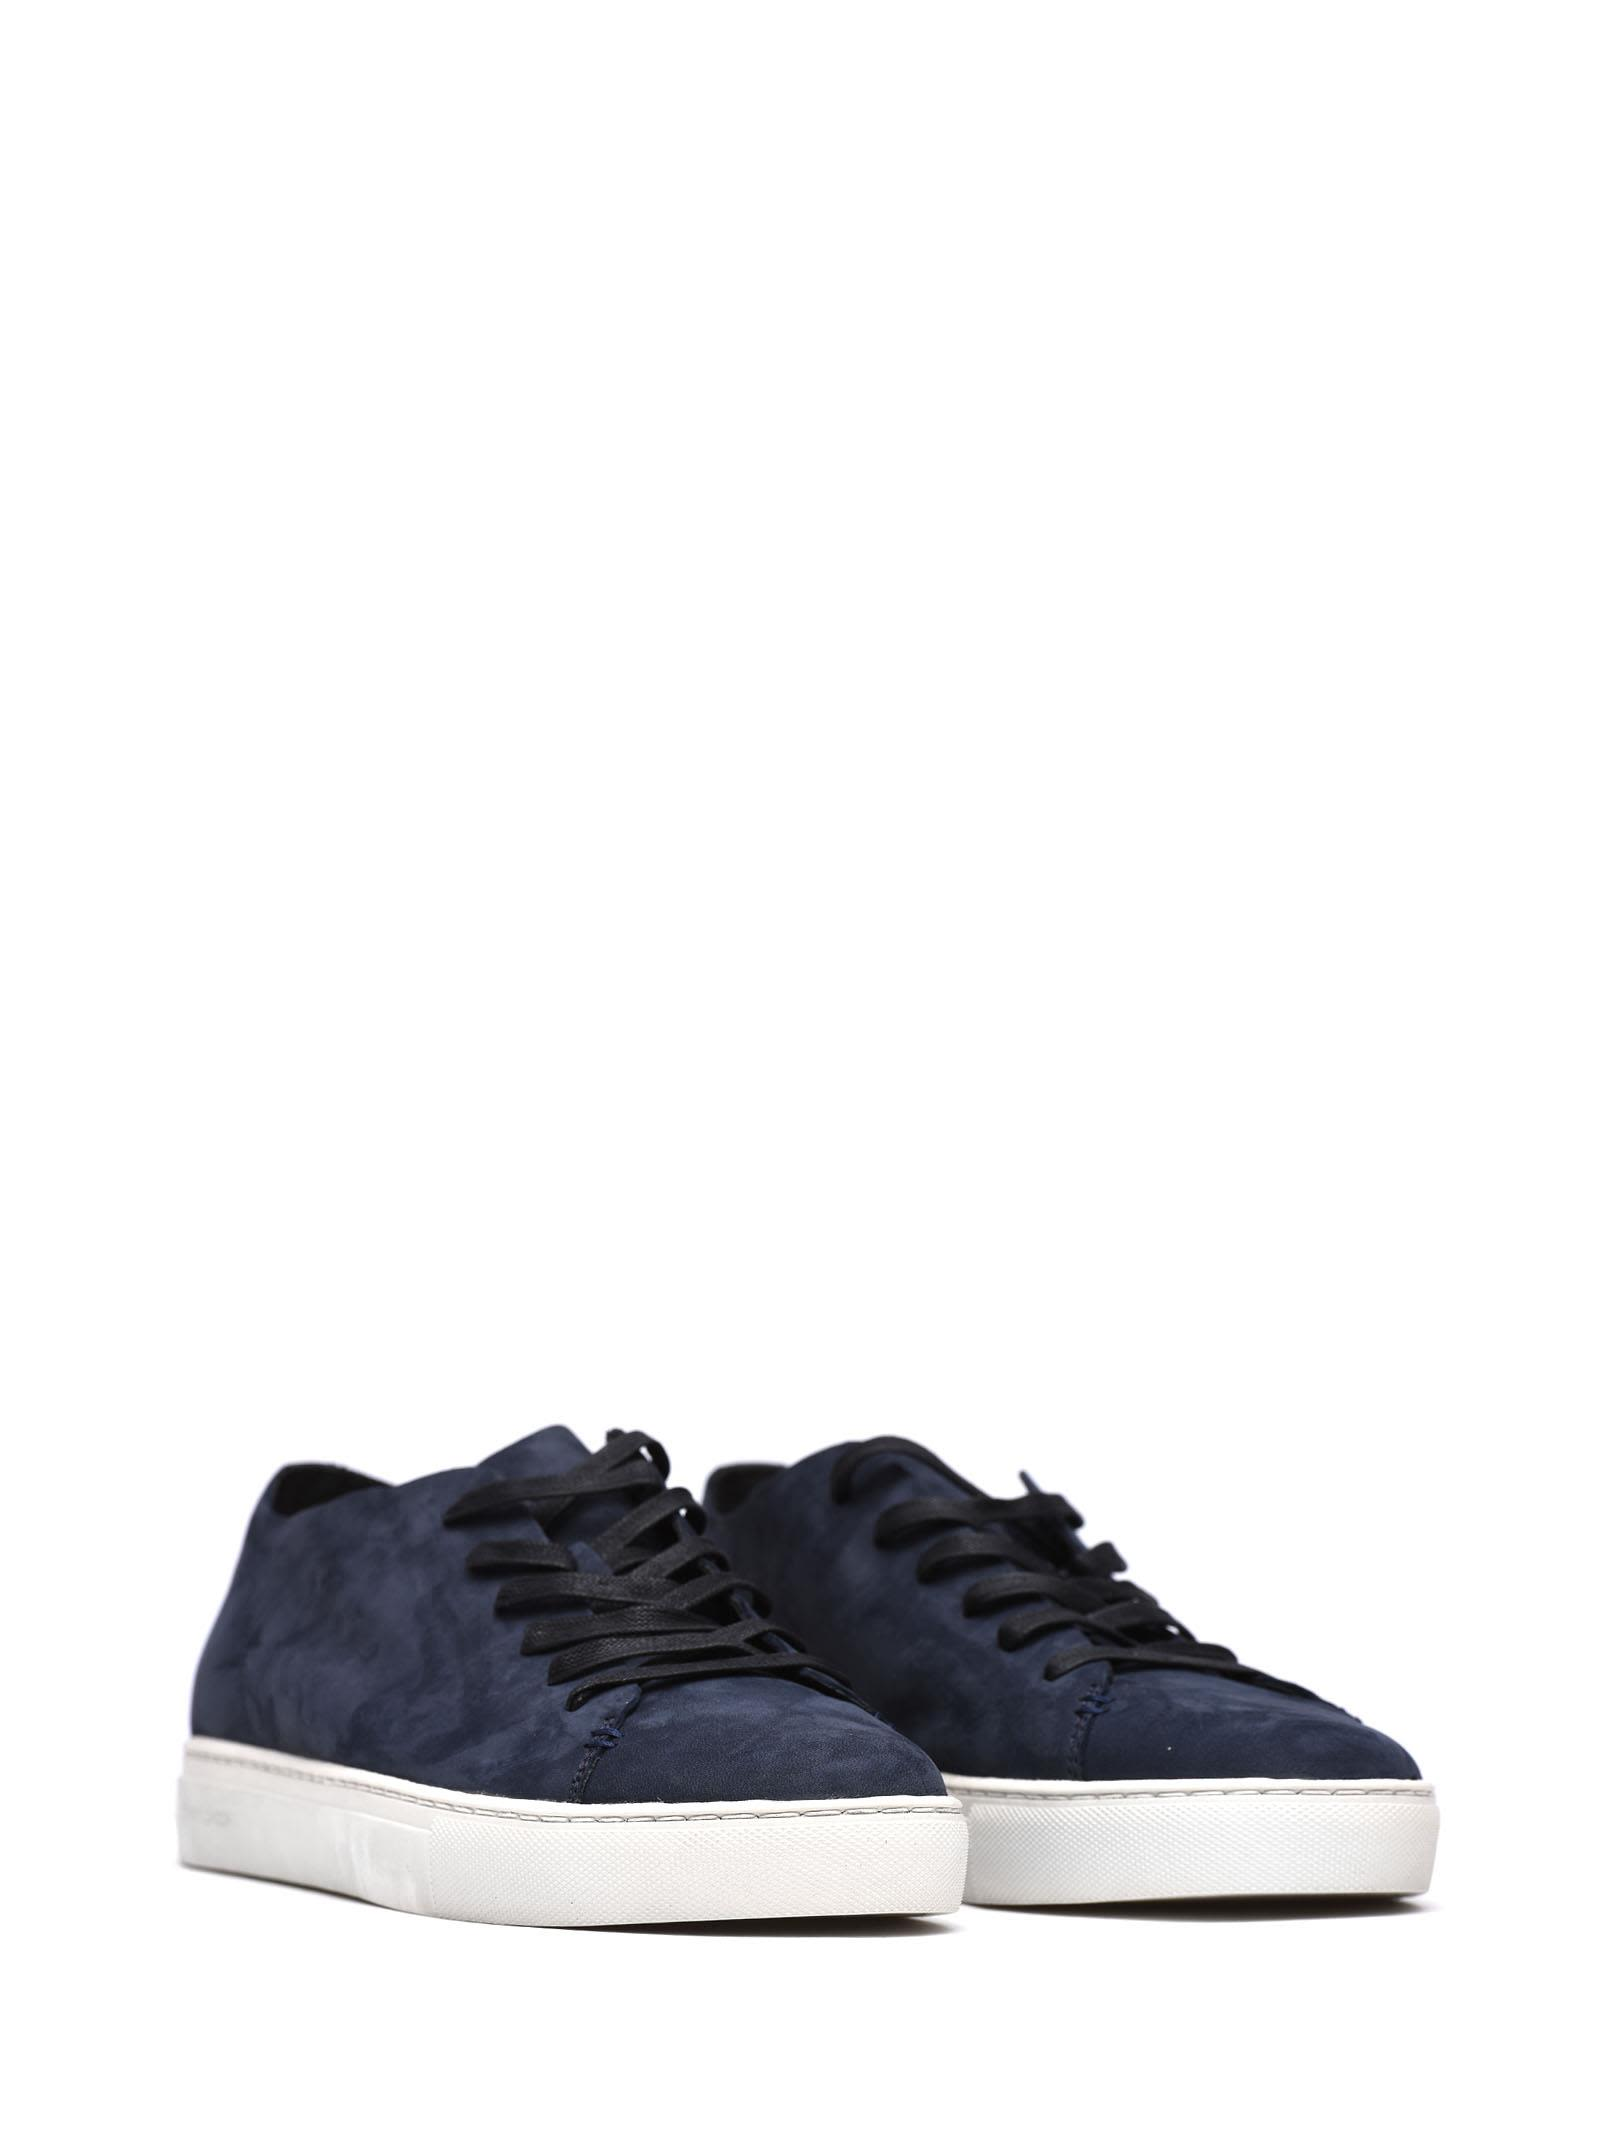 Crime RAW LO SUEDE SNEAKERS